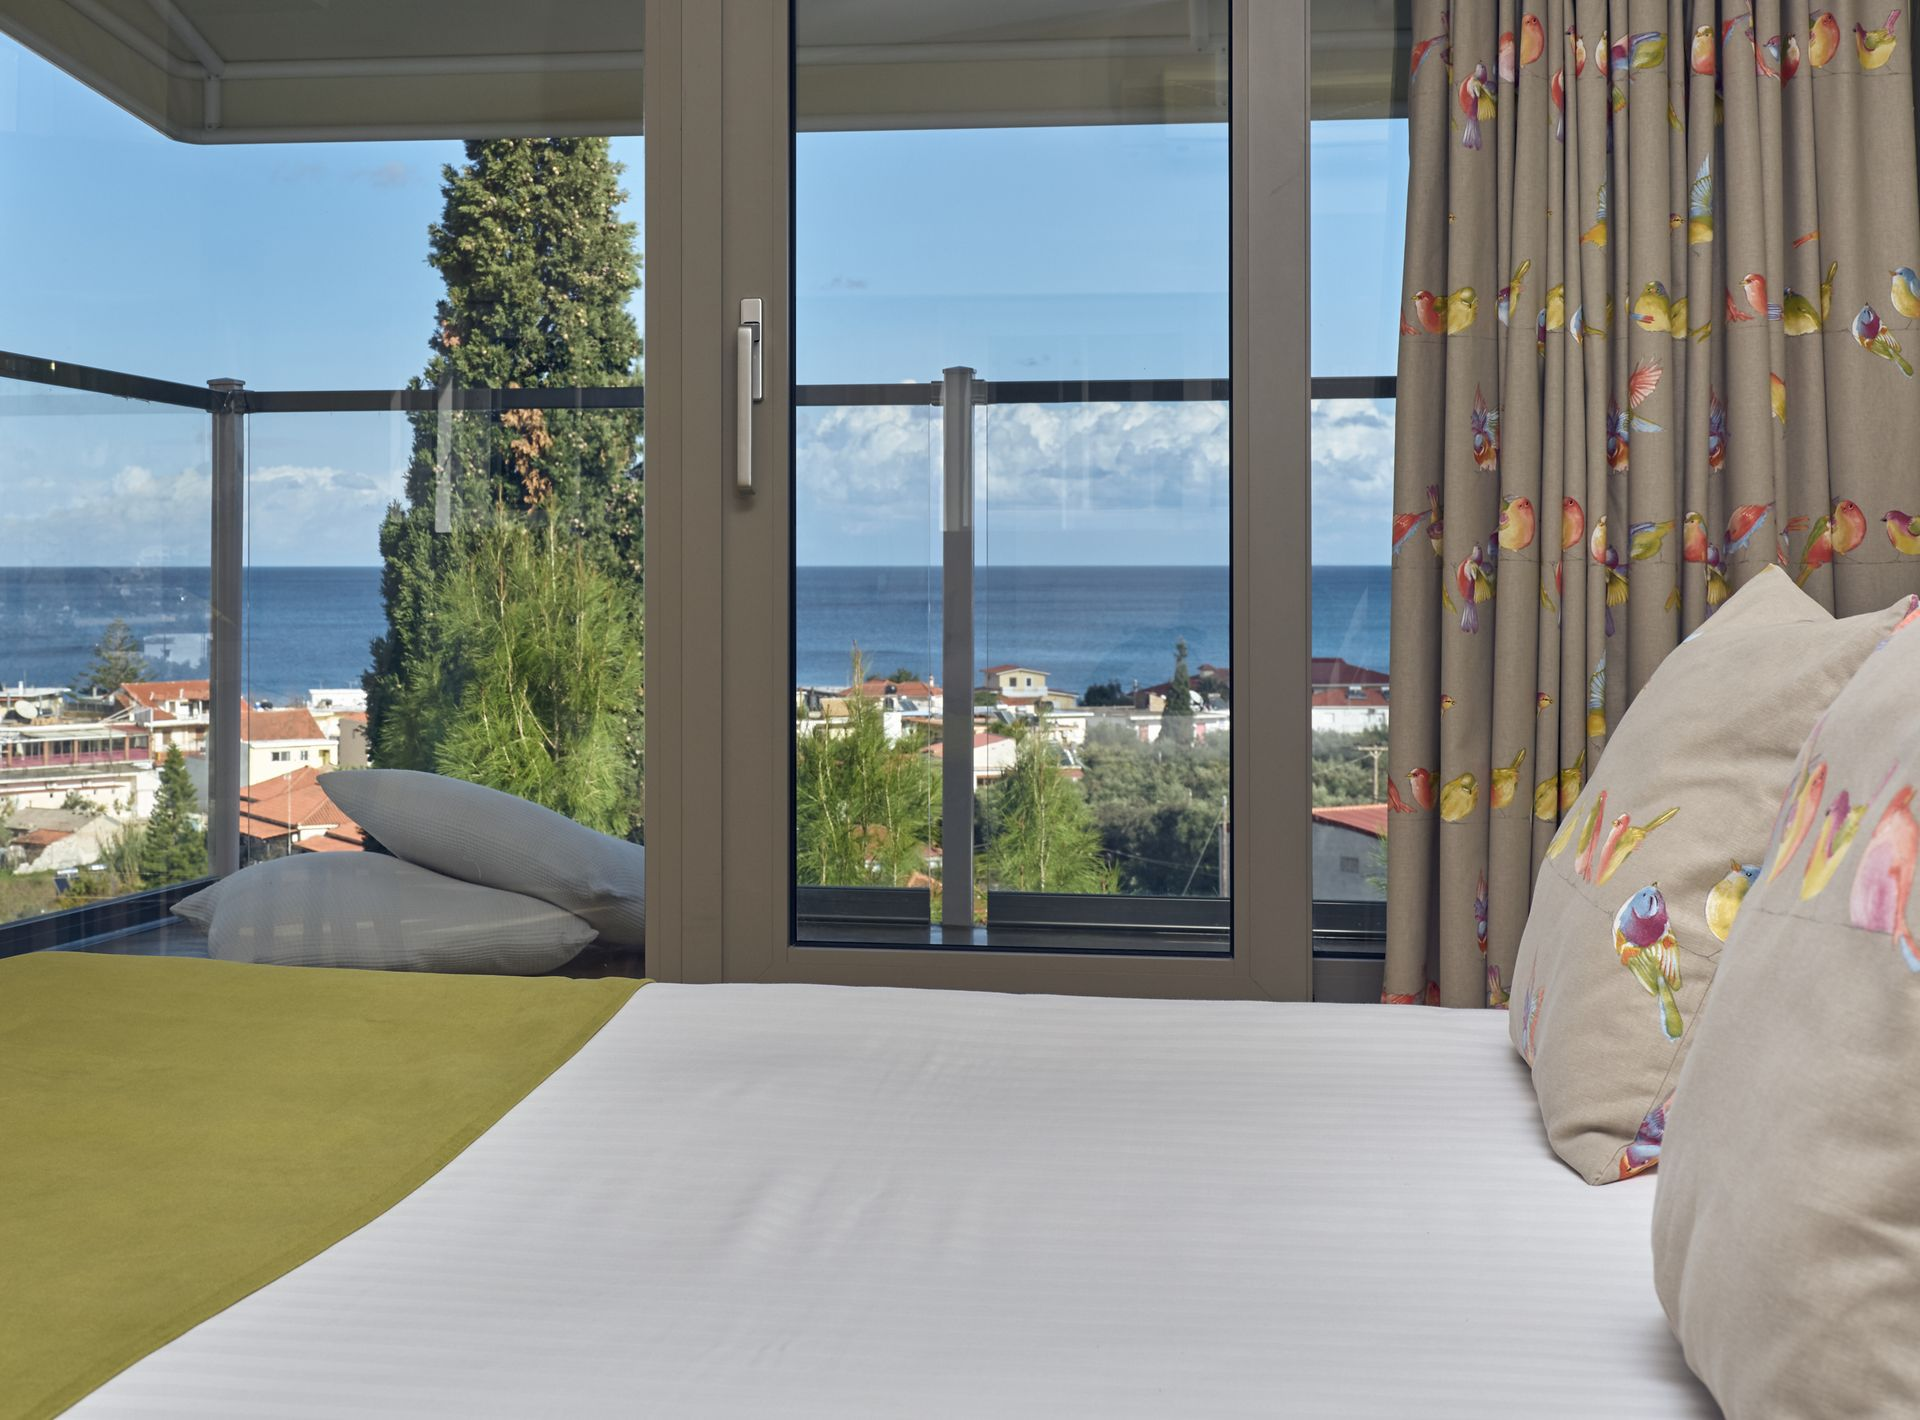 Koukounaria Stylish Suite for 2 pax